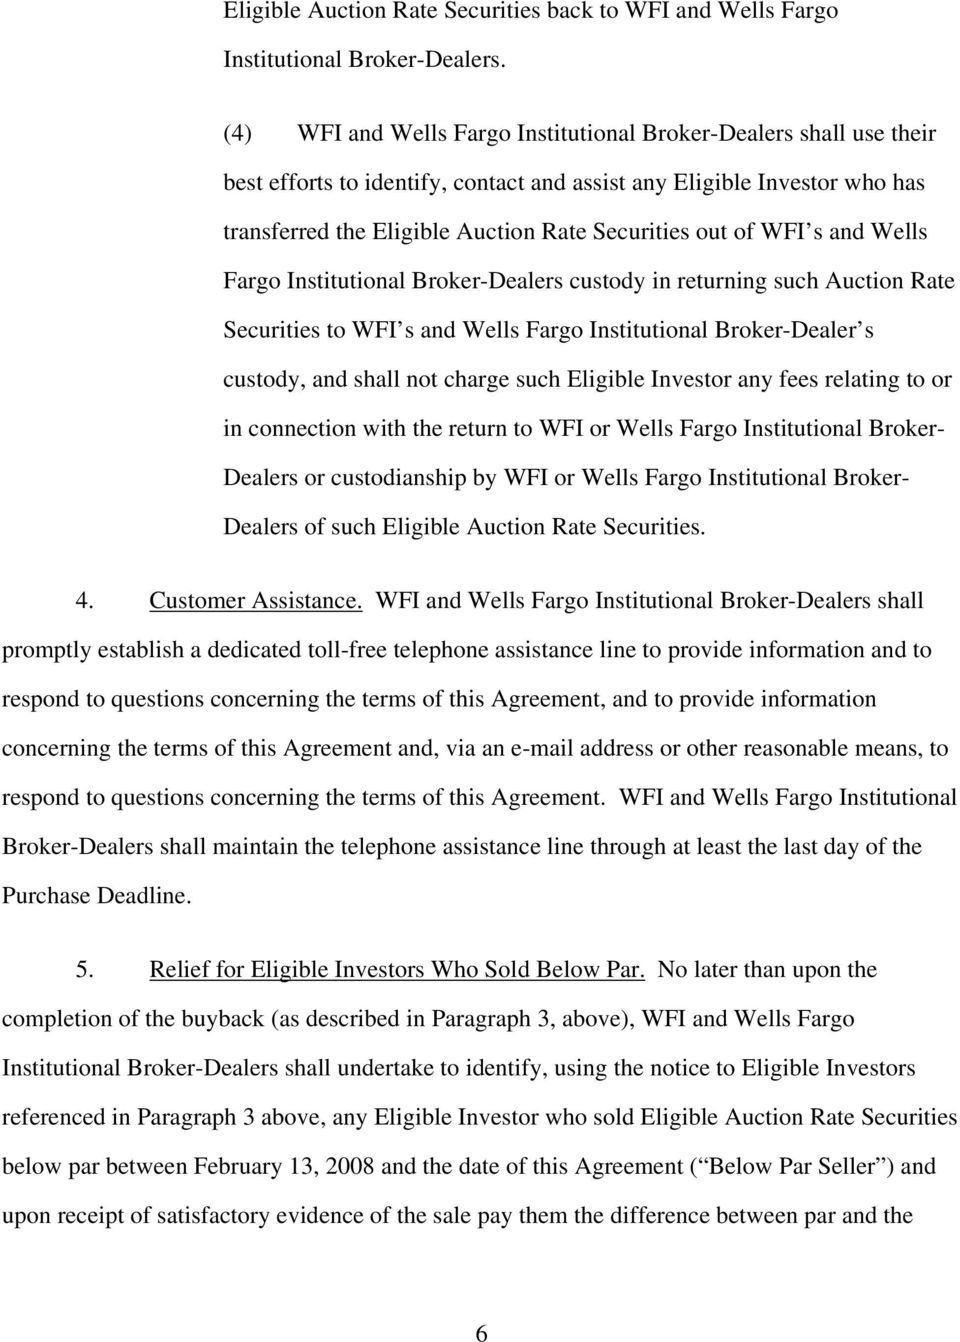 WFI s and Wells Fargo Institutional Broker-Dealers custody in returning such Auction Rate Securities to WFI s and Wells Fargo Institutional Broker-Dealer s custody, and shall not charge such Eligible